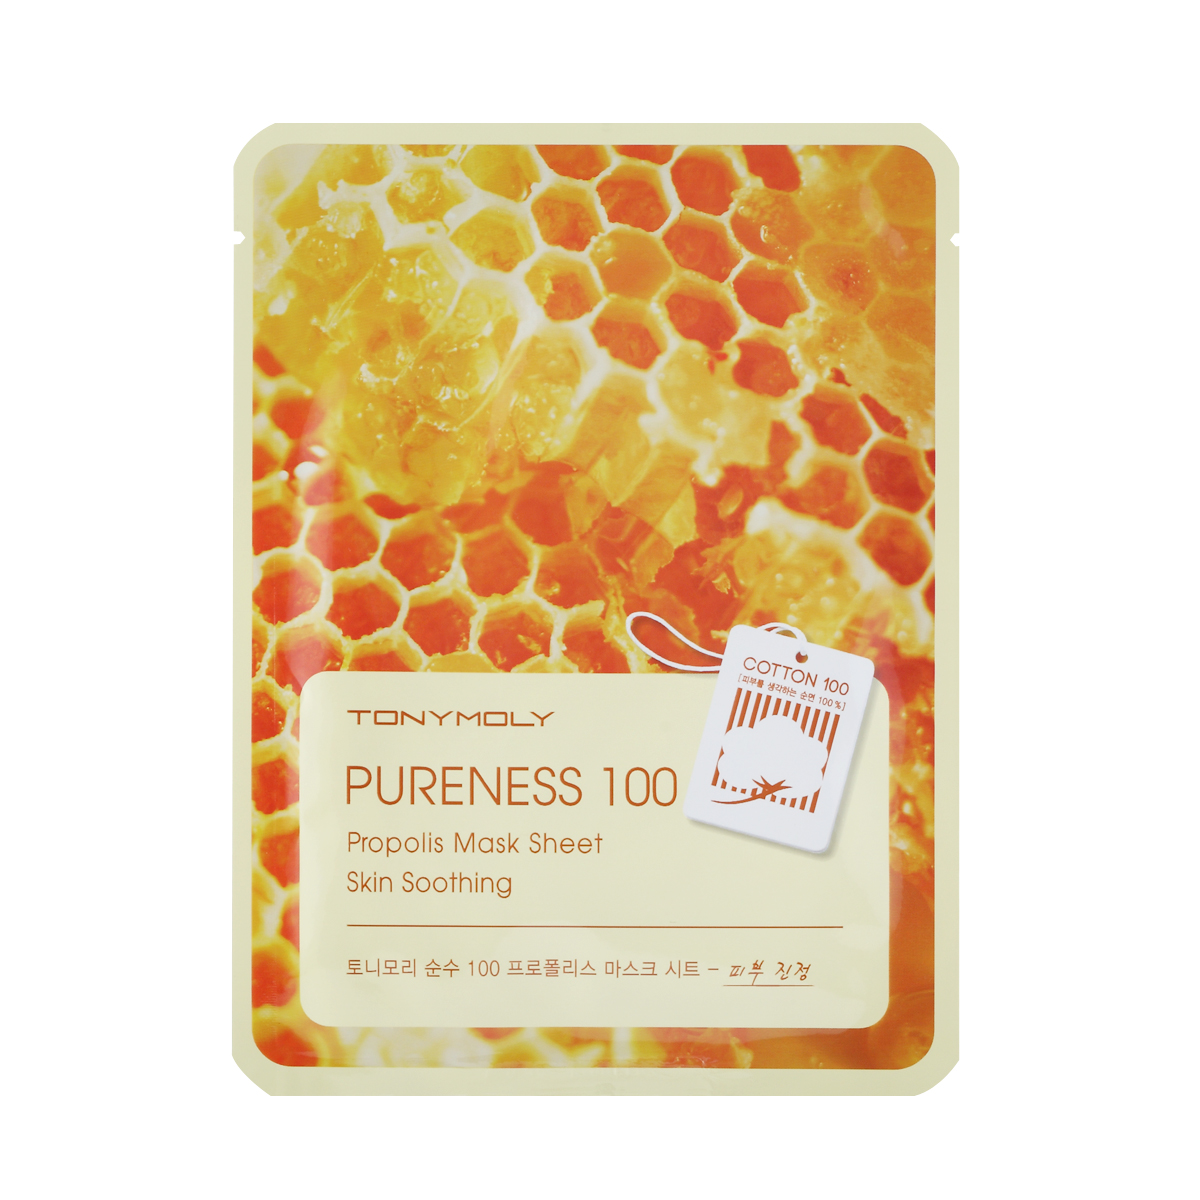 TonyMoly Тканевая маска с экстрактом прополиса Pureness 100 Propolis Mask Sheet-Skin Calming, 21 мл тканевая маска tony moly pureness 100 shea butter mask sheet объем 21 мл